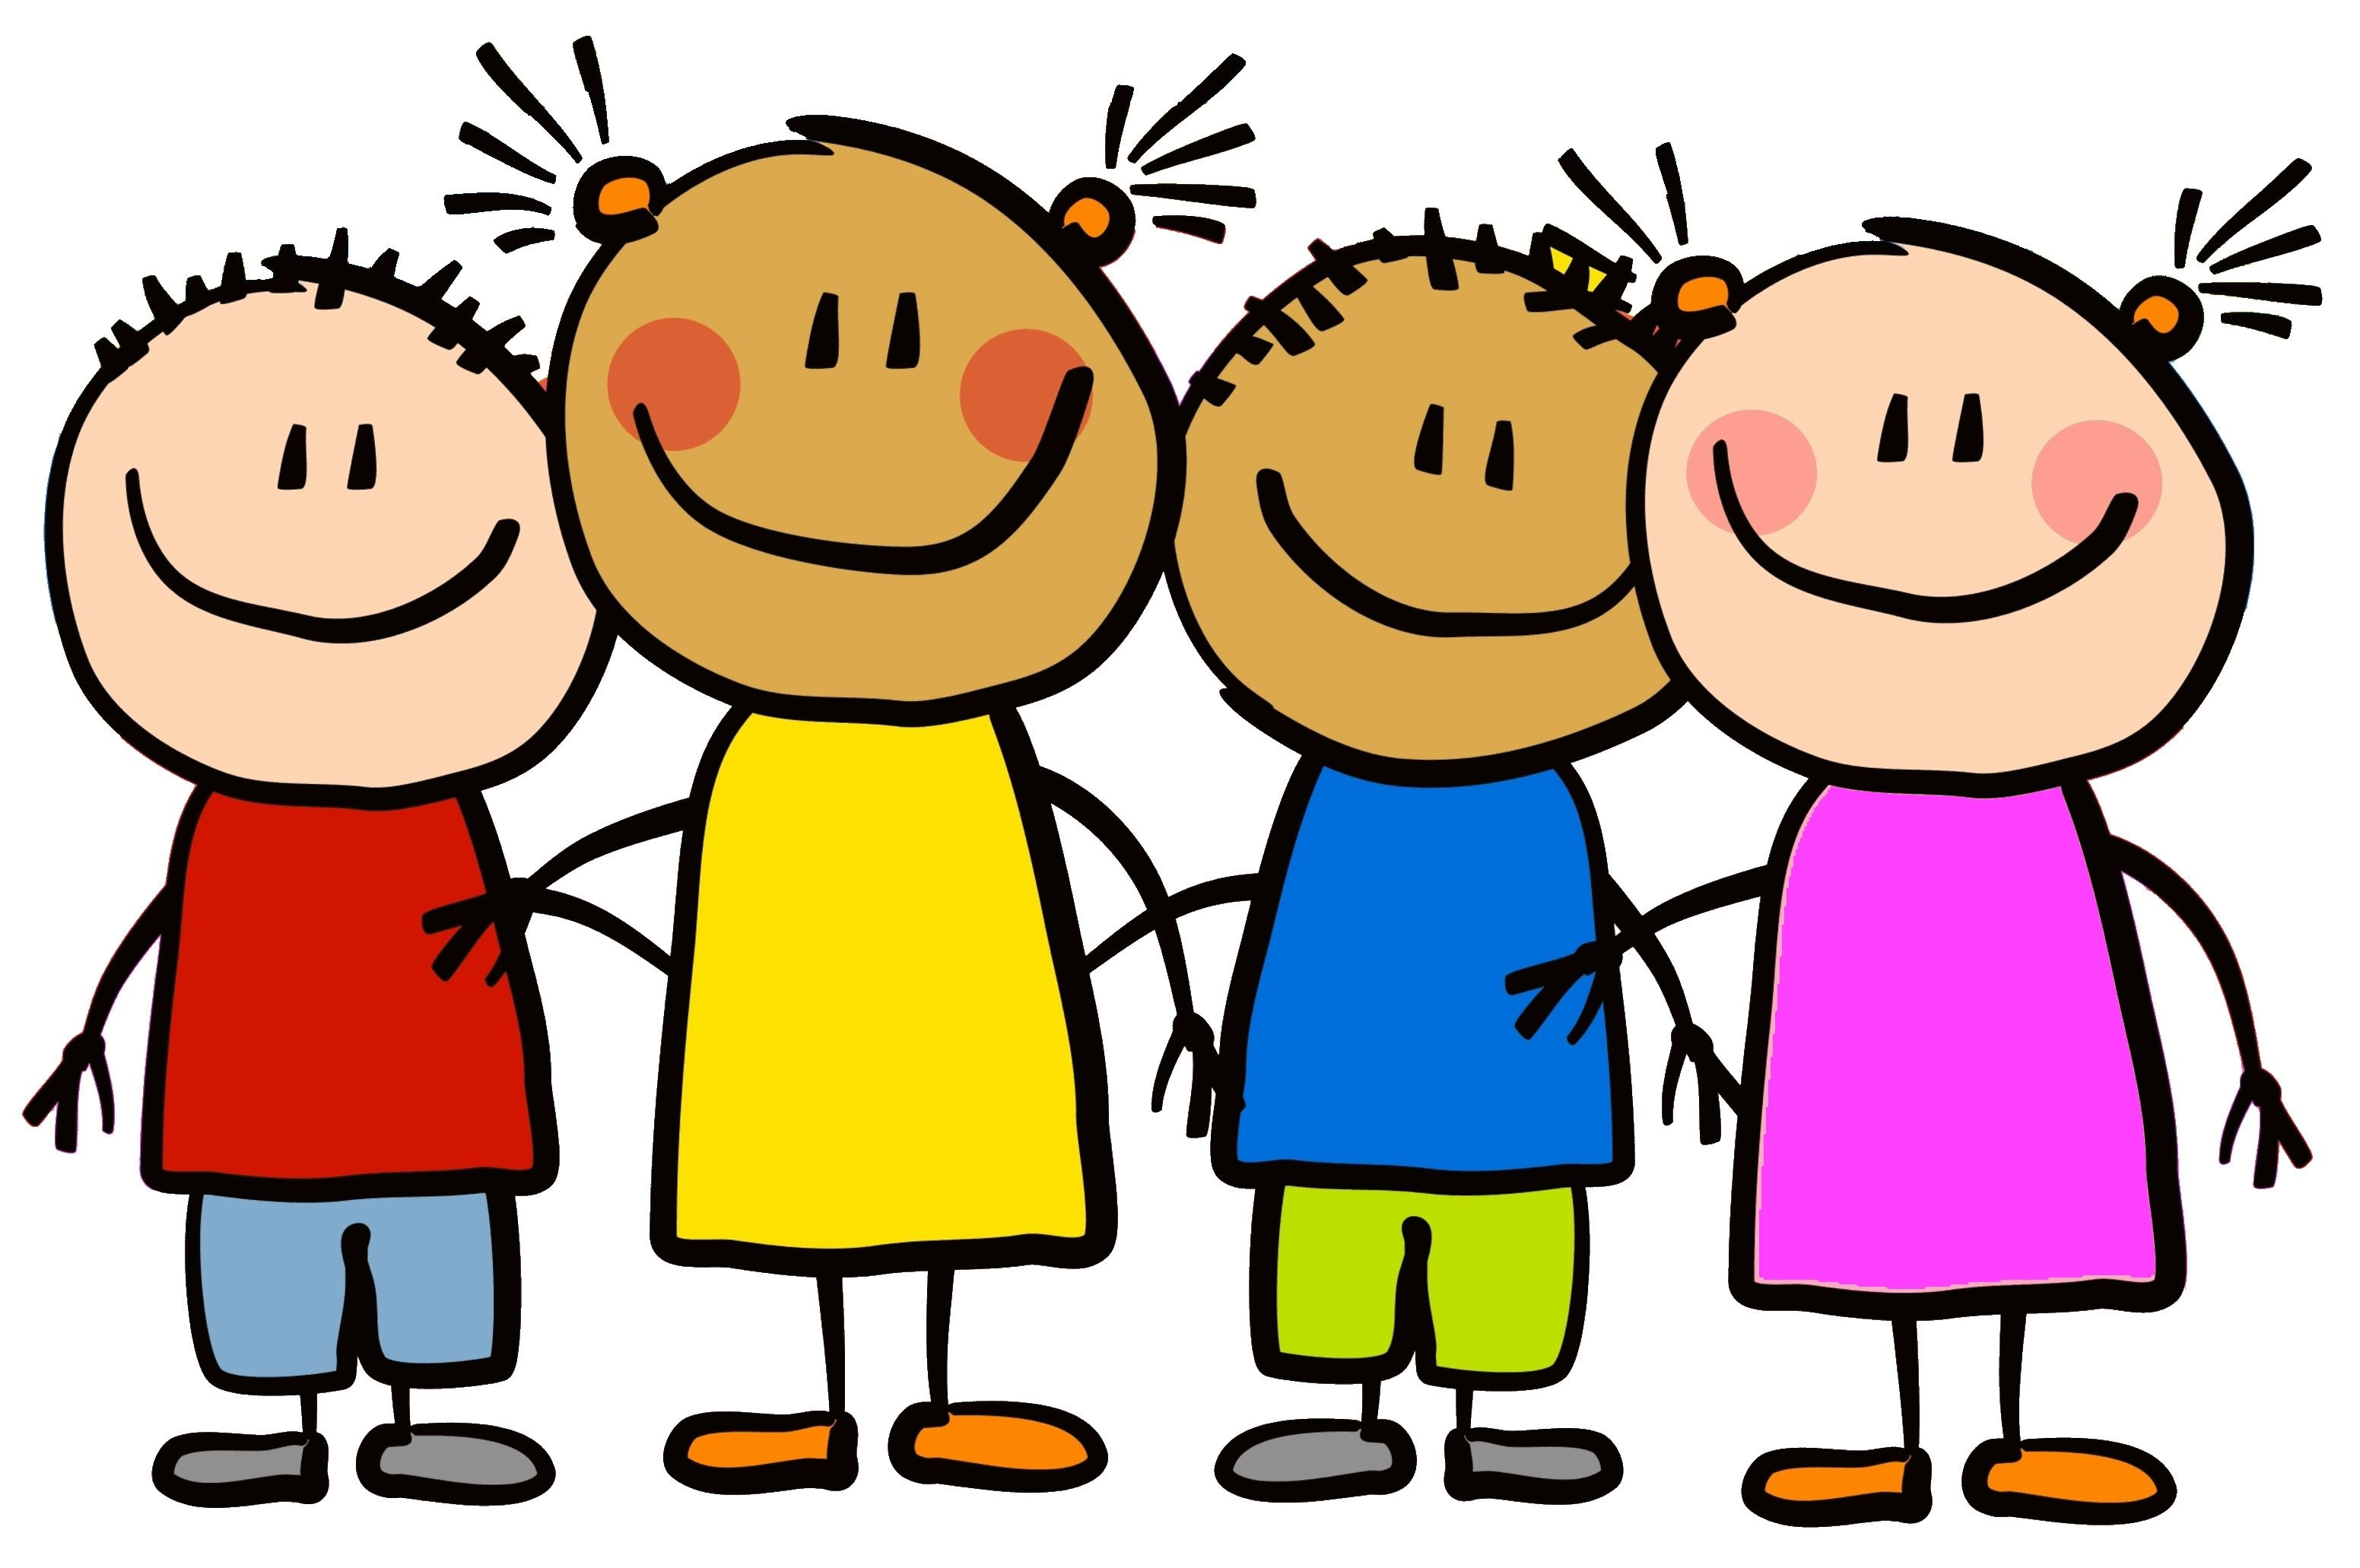 Friendship clipart classroom. Kindergarten friends jpeg for